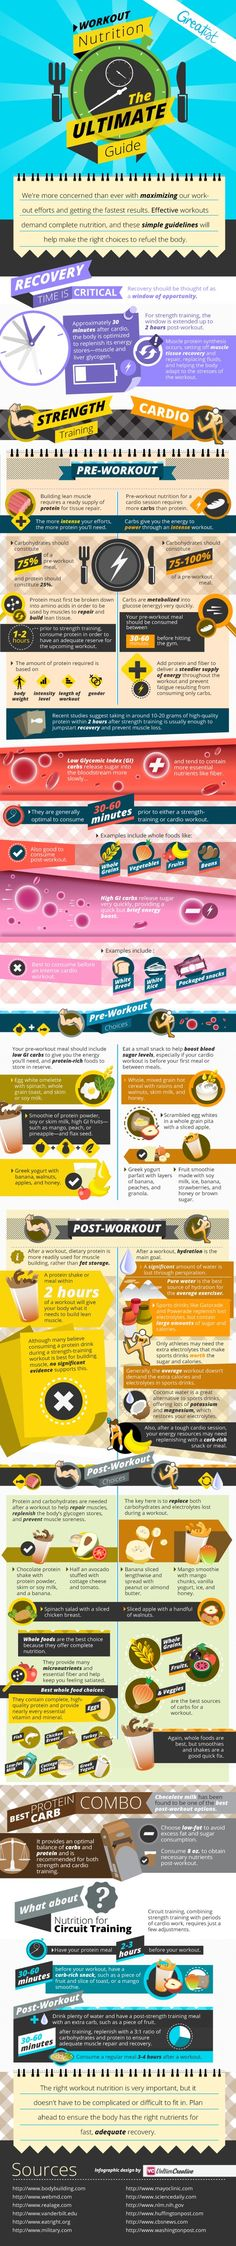 The Ultimate Guide - Workout Nutrition